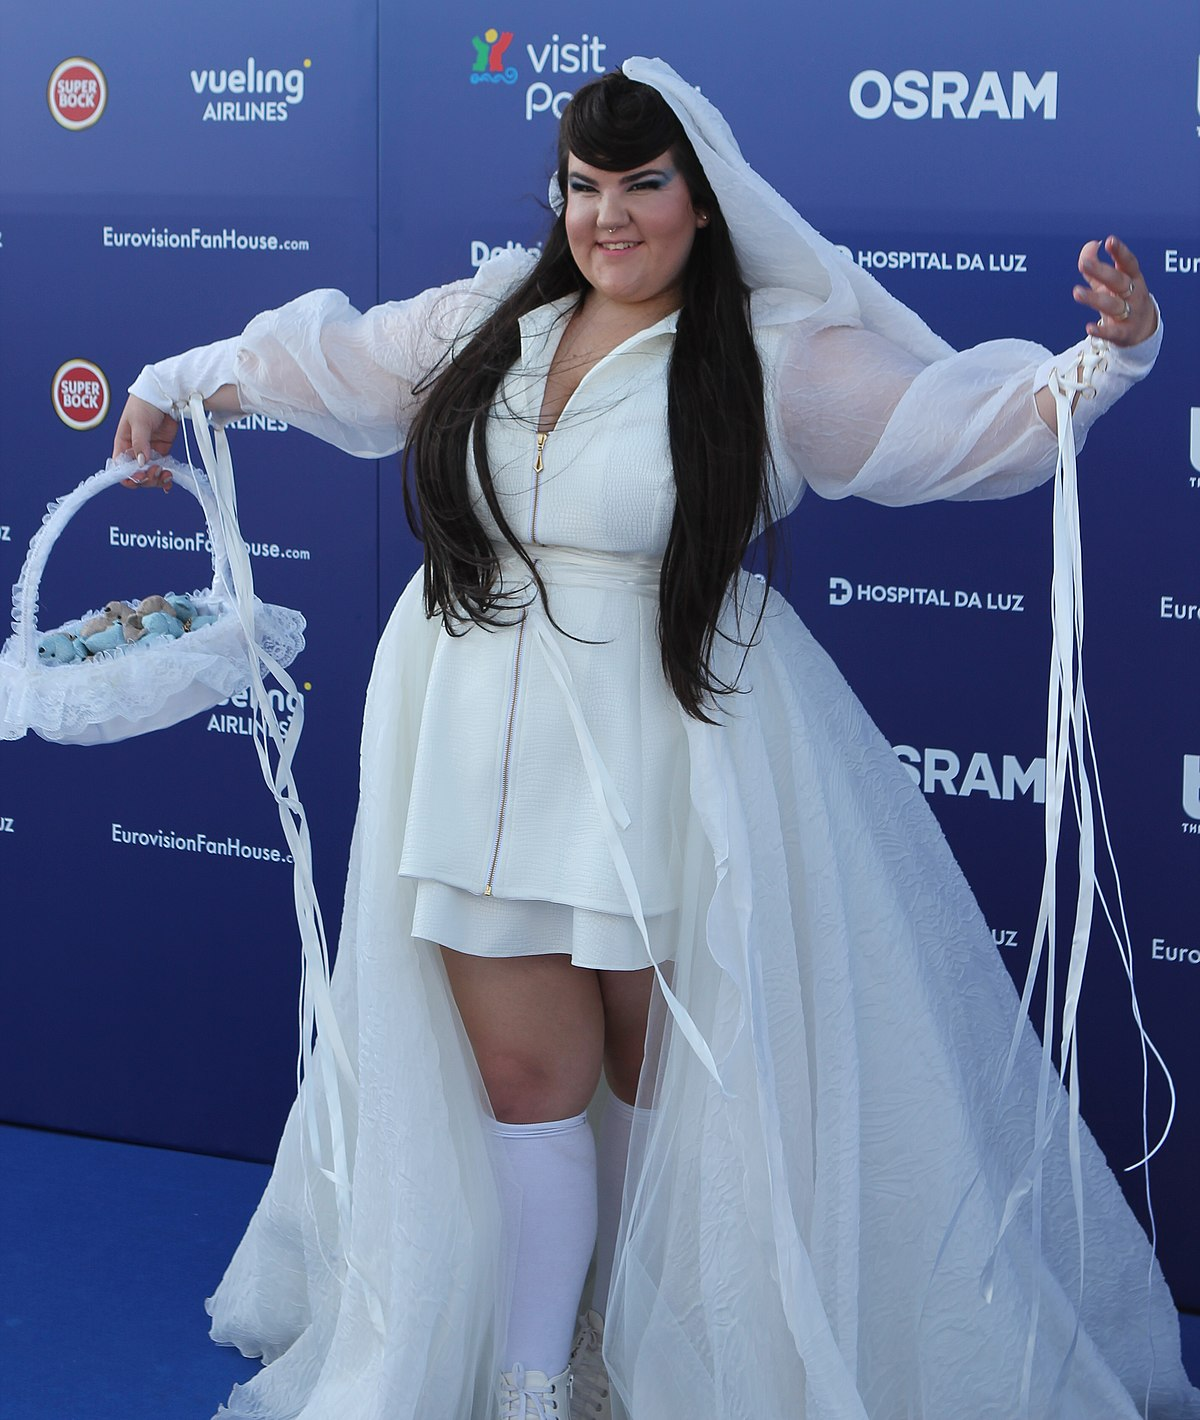 Netta Barzilai nudes (43 photo), leaked Selfie, Instagram, panties 2016